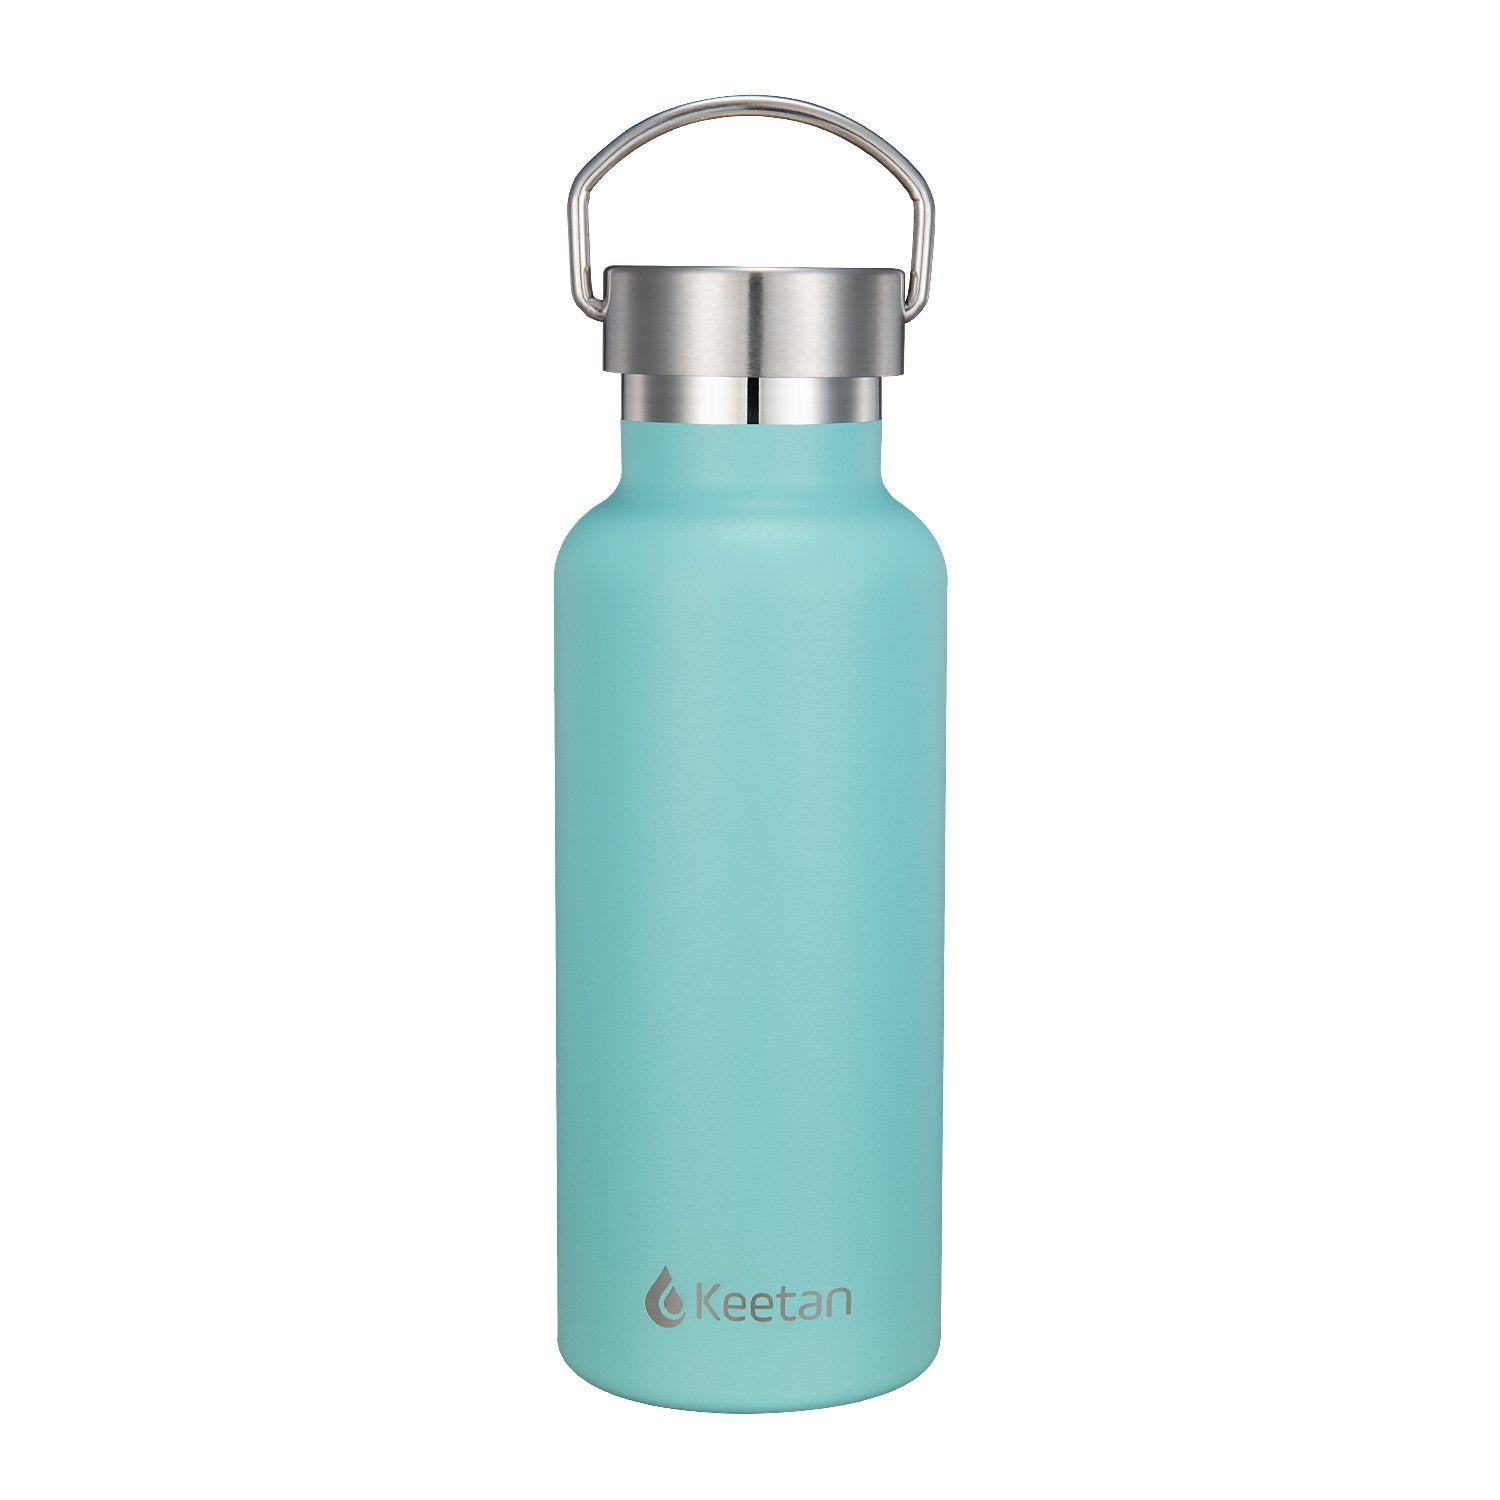 Keetan POLO Water Bottle-Blue - Customized